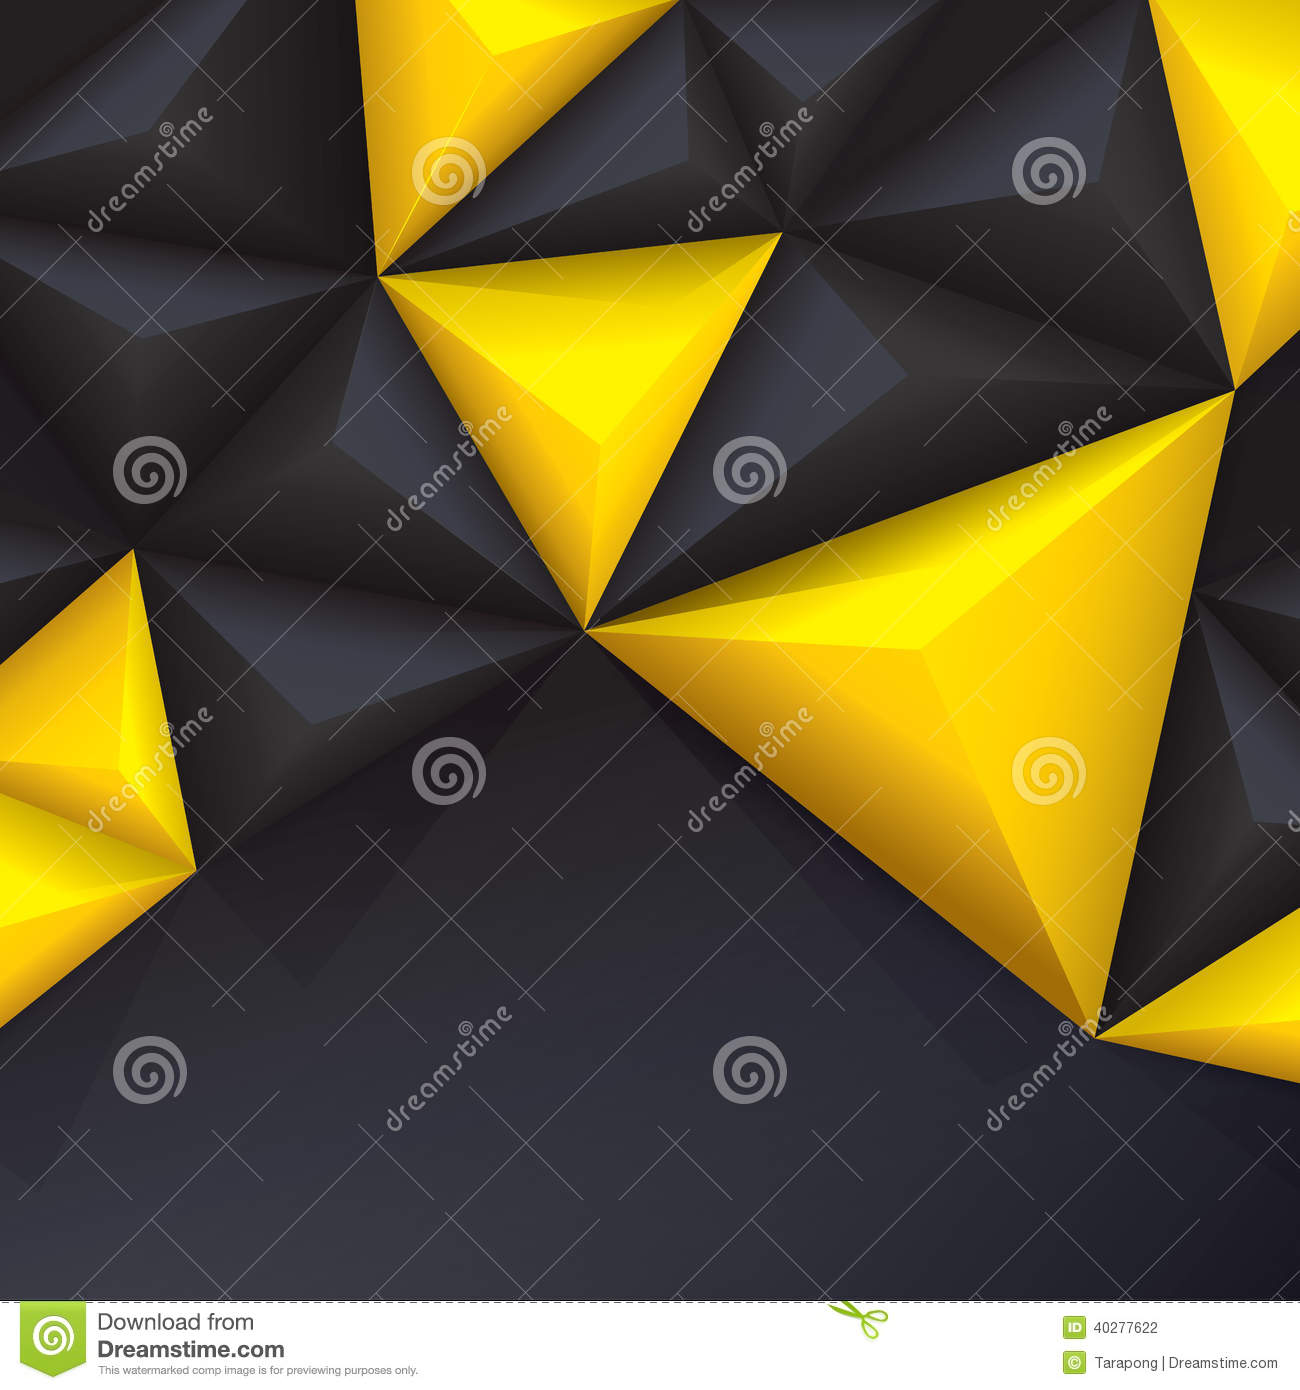 Book With Black And Yellow Cover : Yellow and black vector geometric background stock